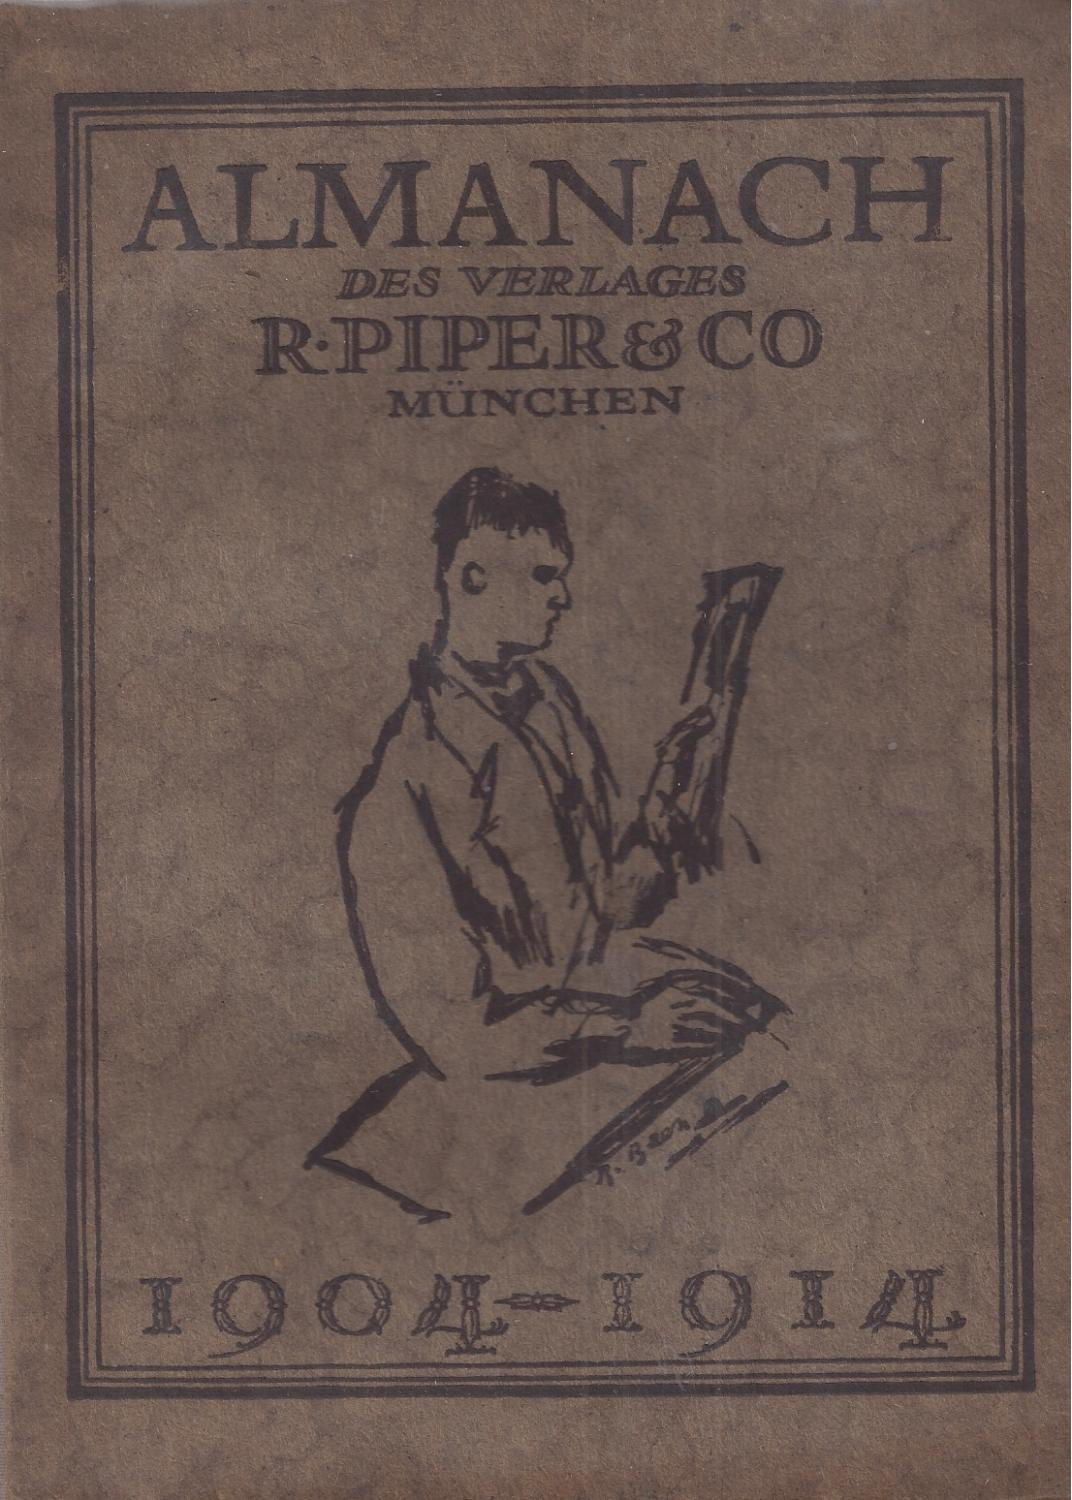 ALMANACH DES VERLAGES R. PIPER & CO.: Piper, R. -